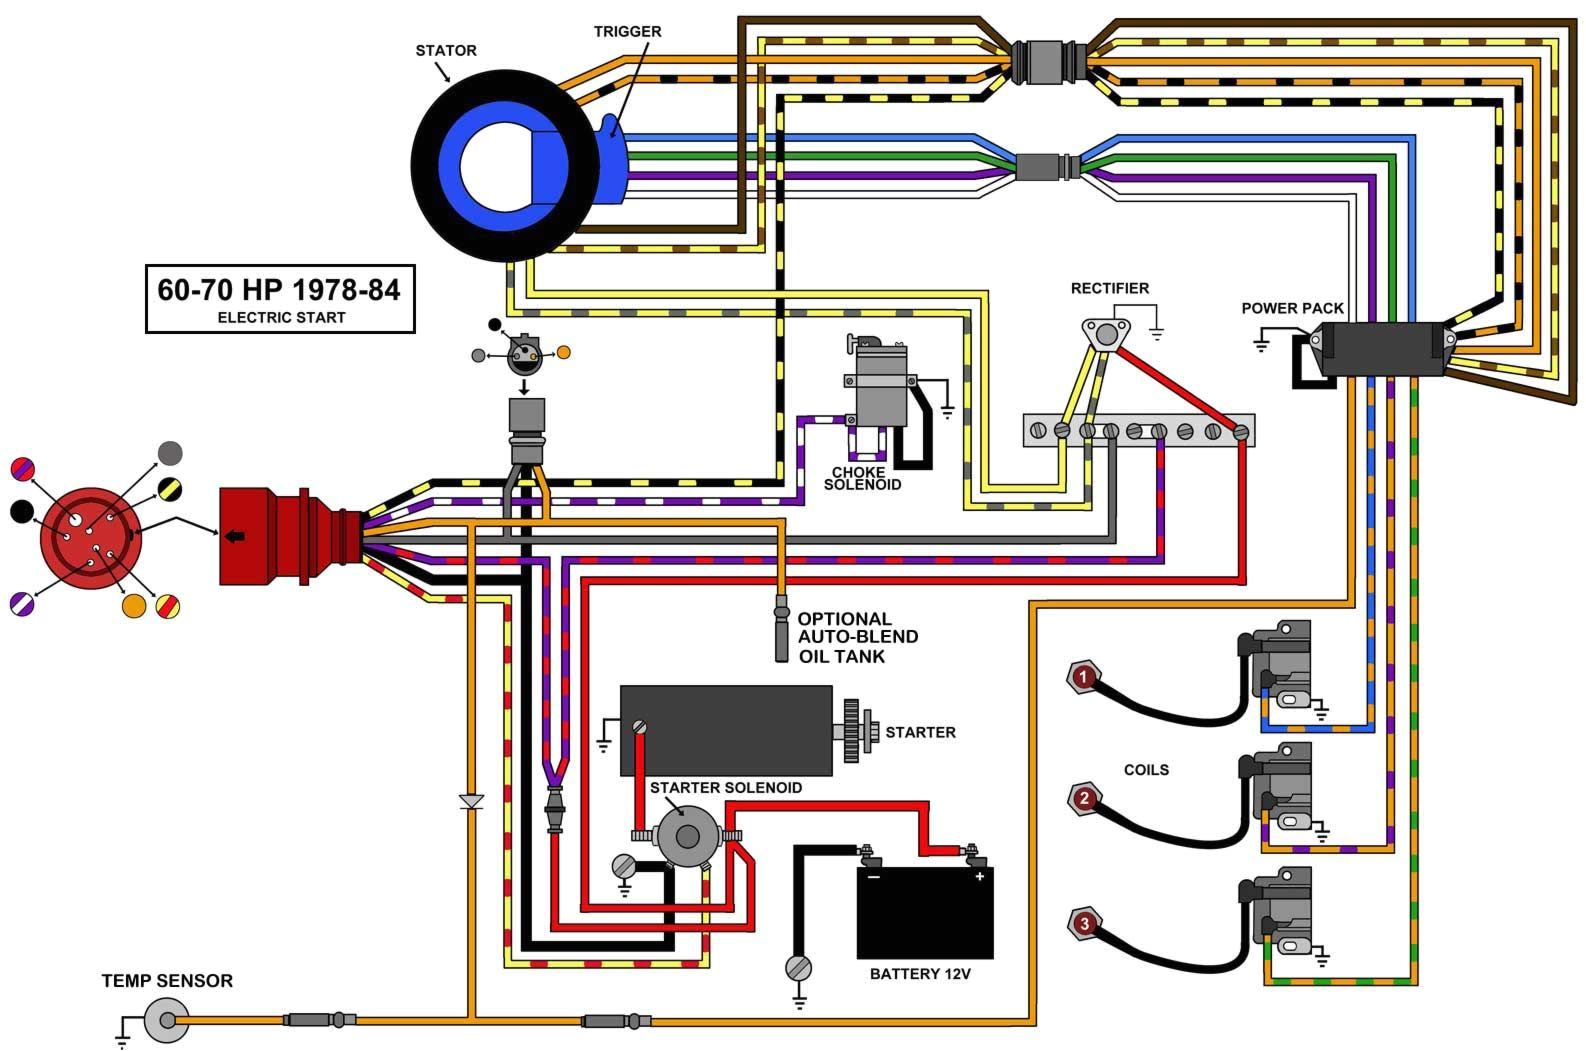 Evinrude Red Plug Wiring Diagram D03ec Nissan 3 0 Hp Outboard Wiring Diagram Wiring Library